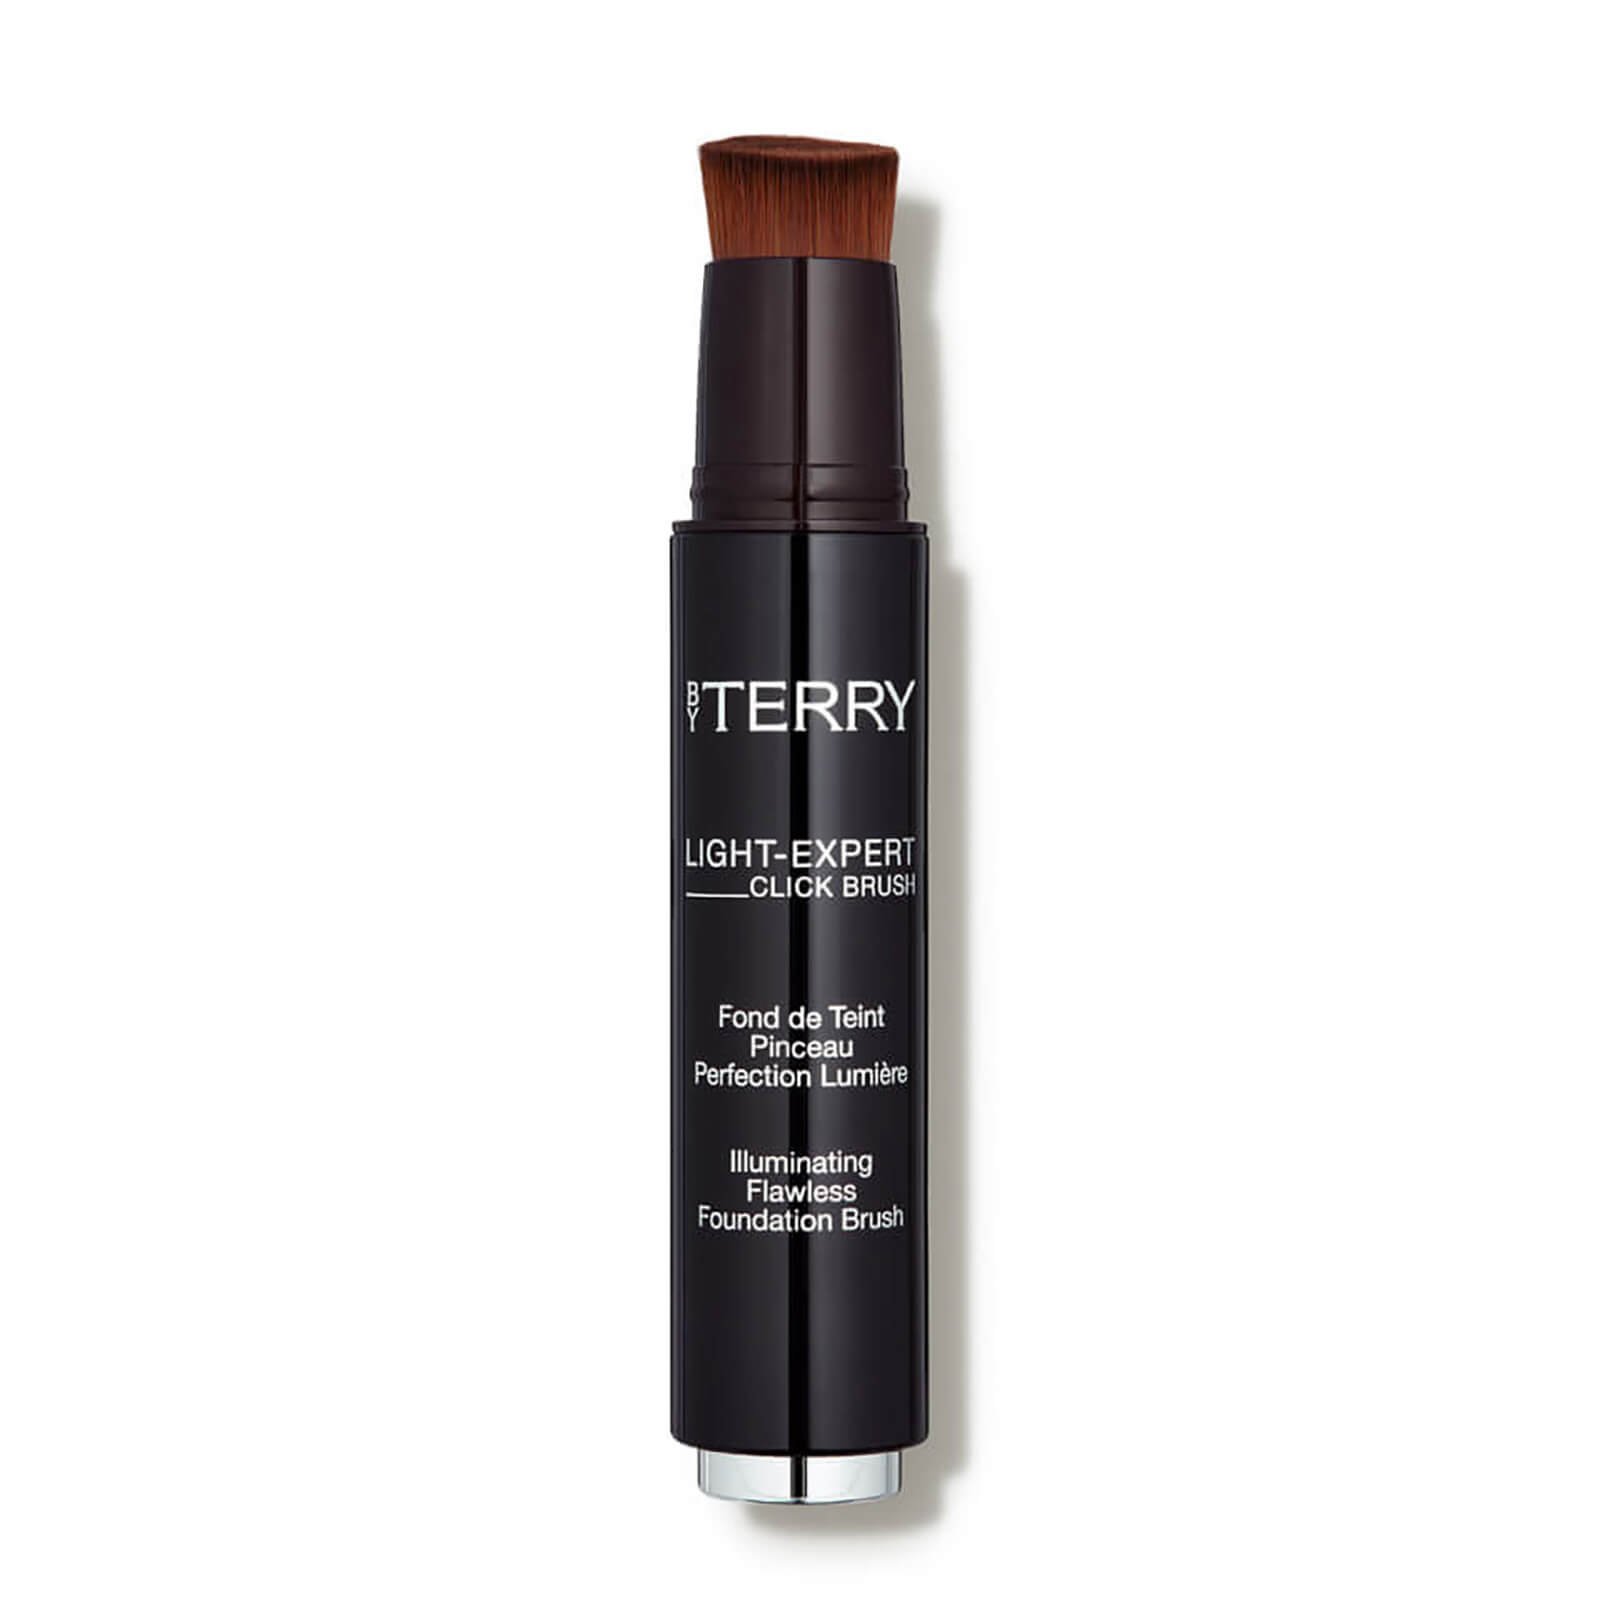 By Terry Light-Expert Click Brush Foundation 19.5ml (Various Shades) - 1. Rosy Light